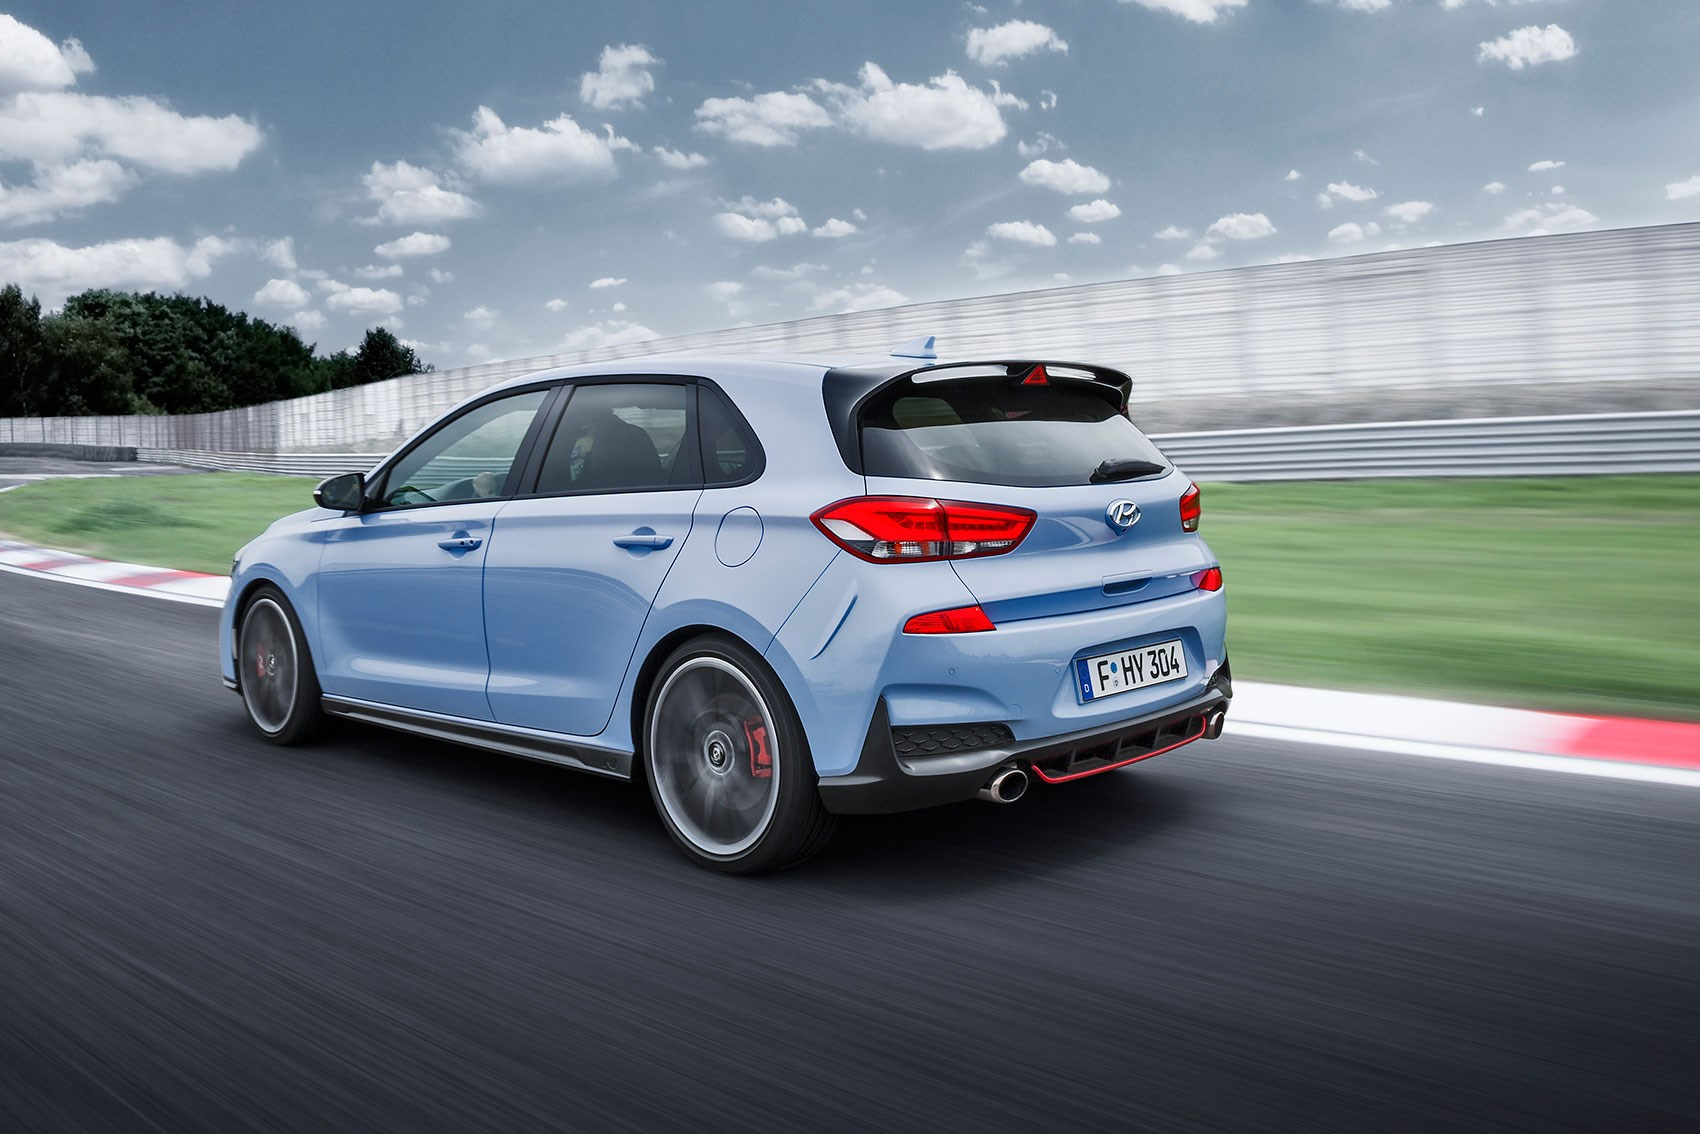 hyundai i30n and i30 fastback revealed in pictures by car magazine. Black Bedroom Furniture Sets. Home Design Ideas